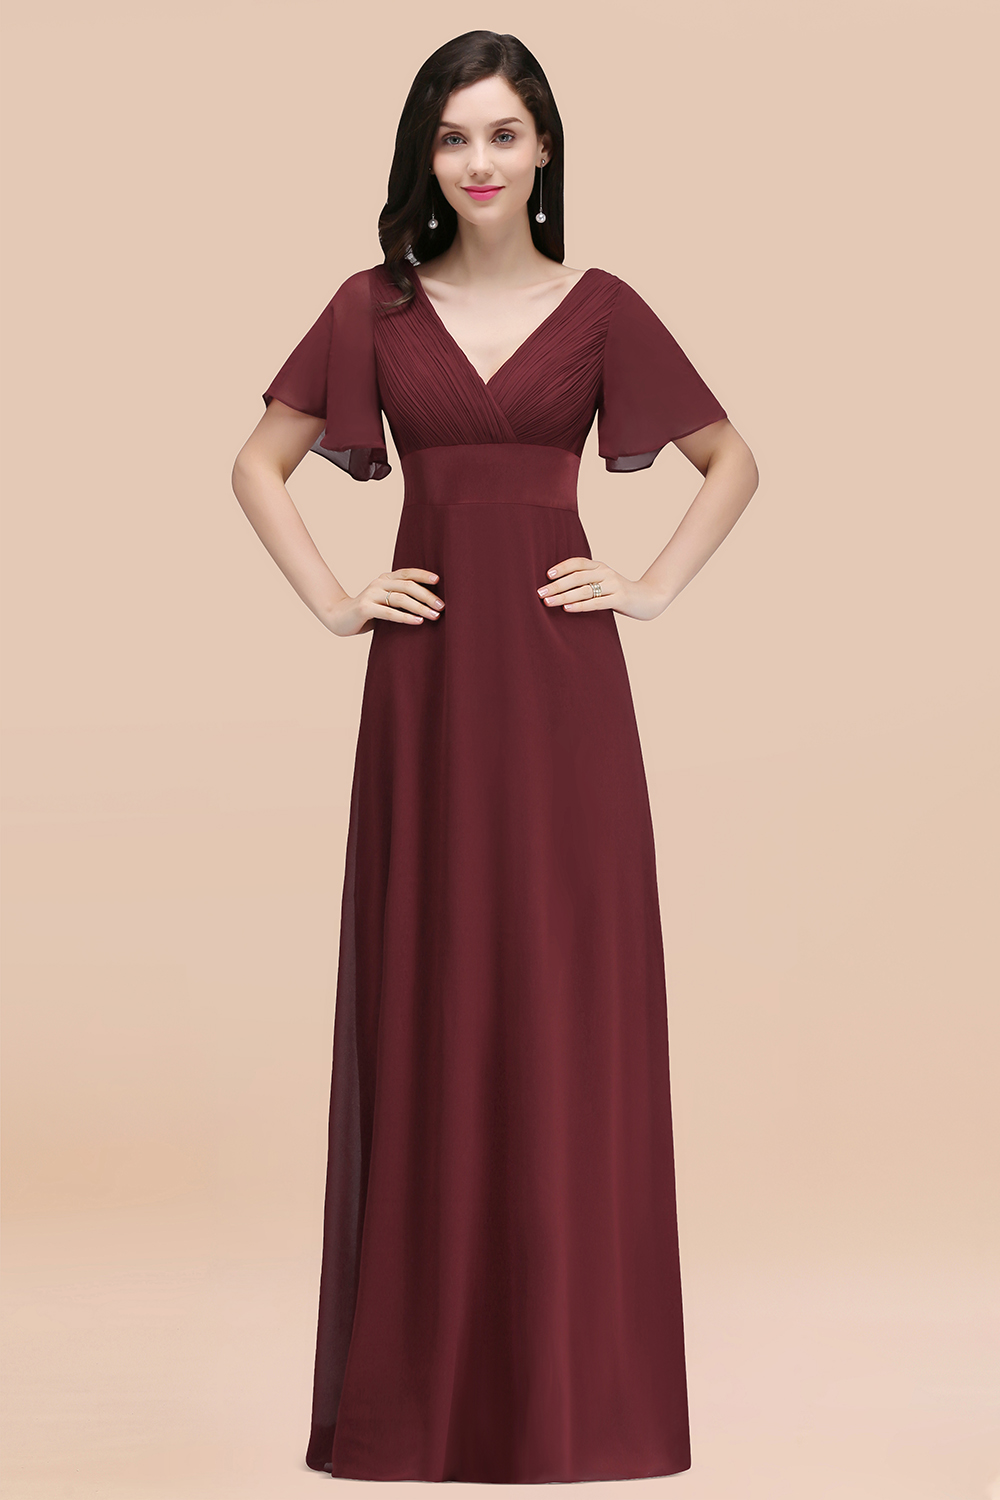 BMbridal Affordable V-Neck Ruffle Long Burgundy Bridesmaid Dress With Short-Sleeves